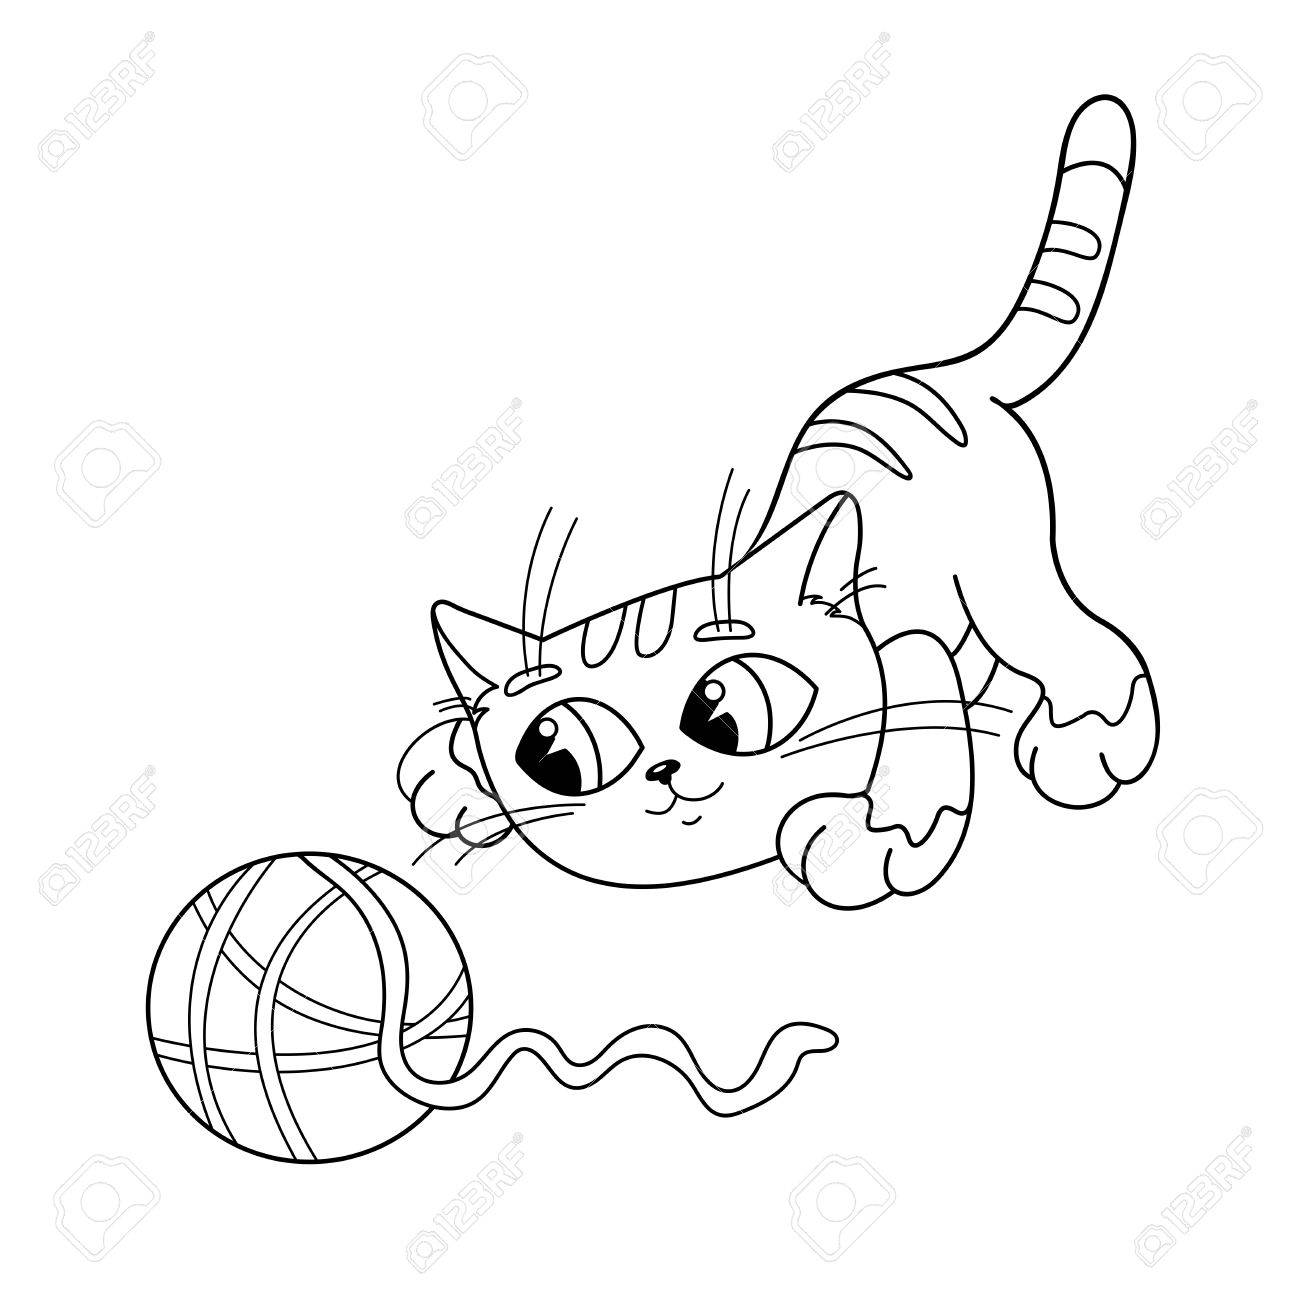 Coloring Page Outline Of A Cartoon Cat Playing With Ball Yarn Book For